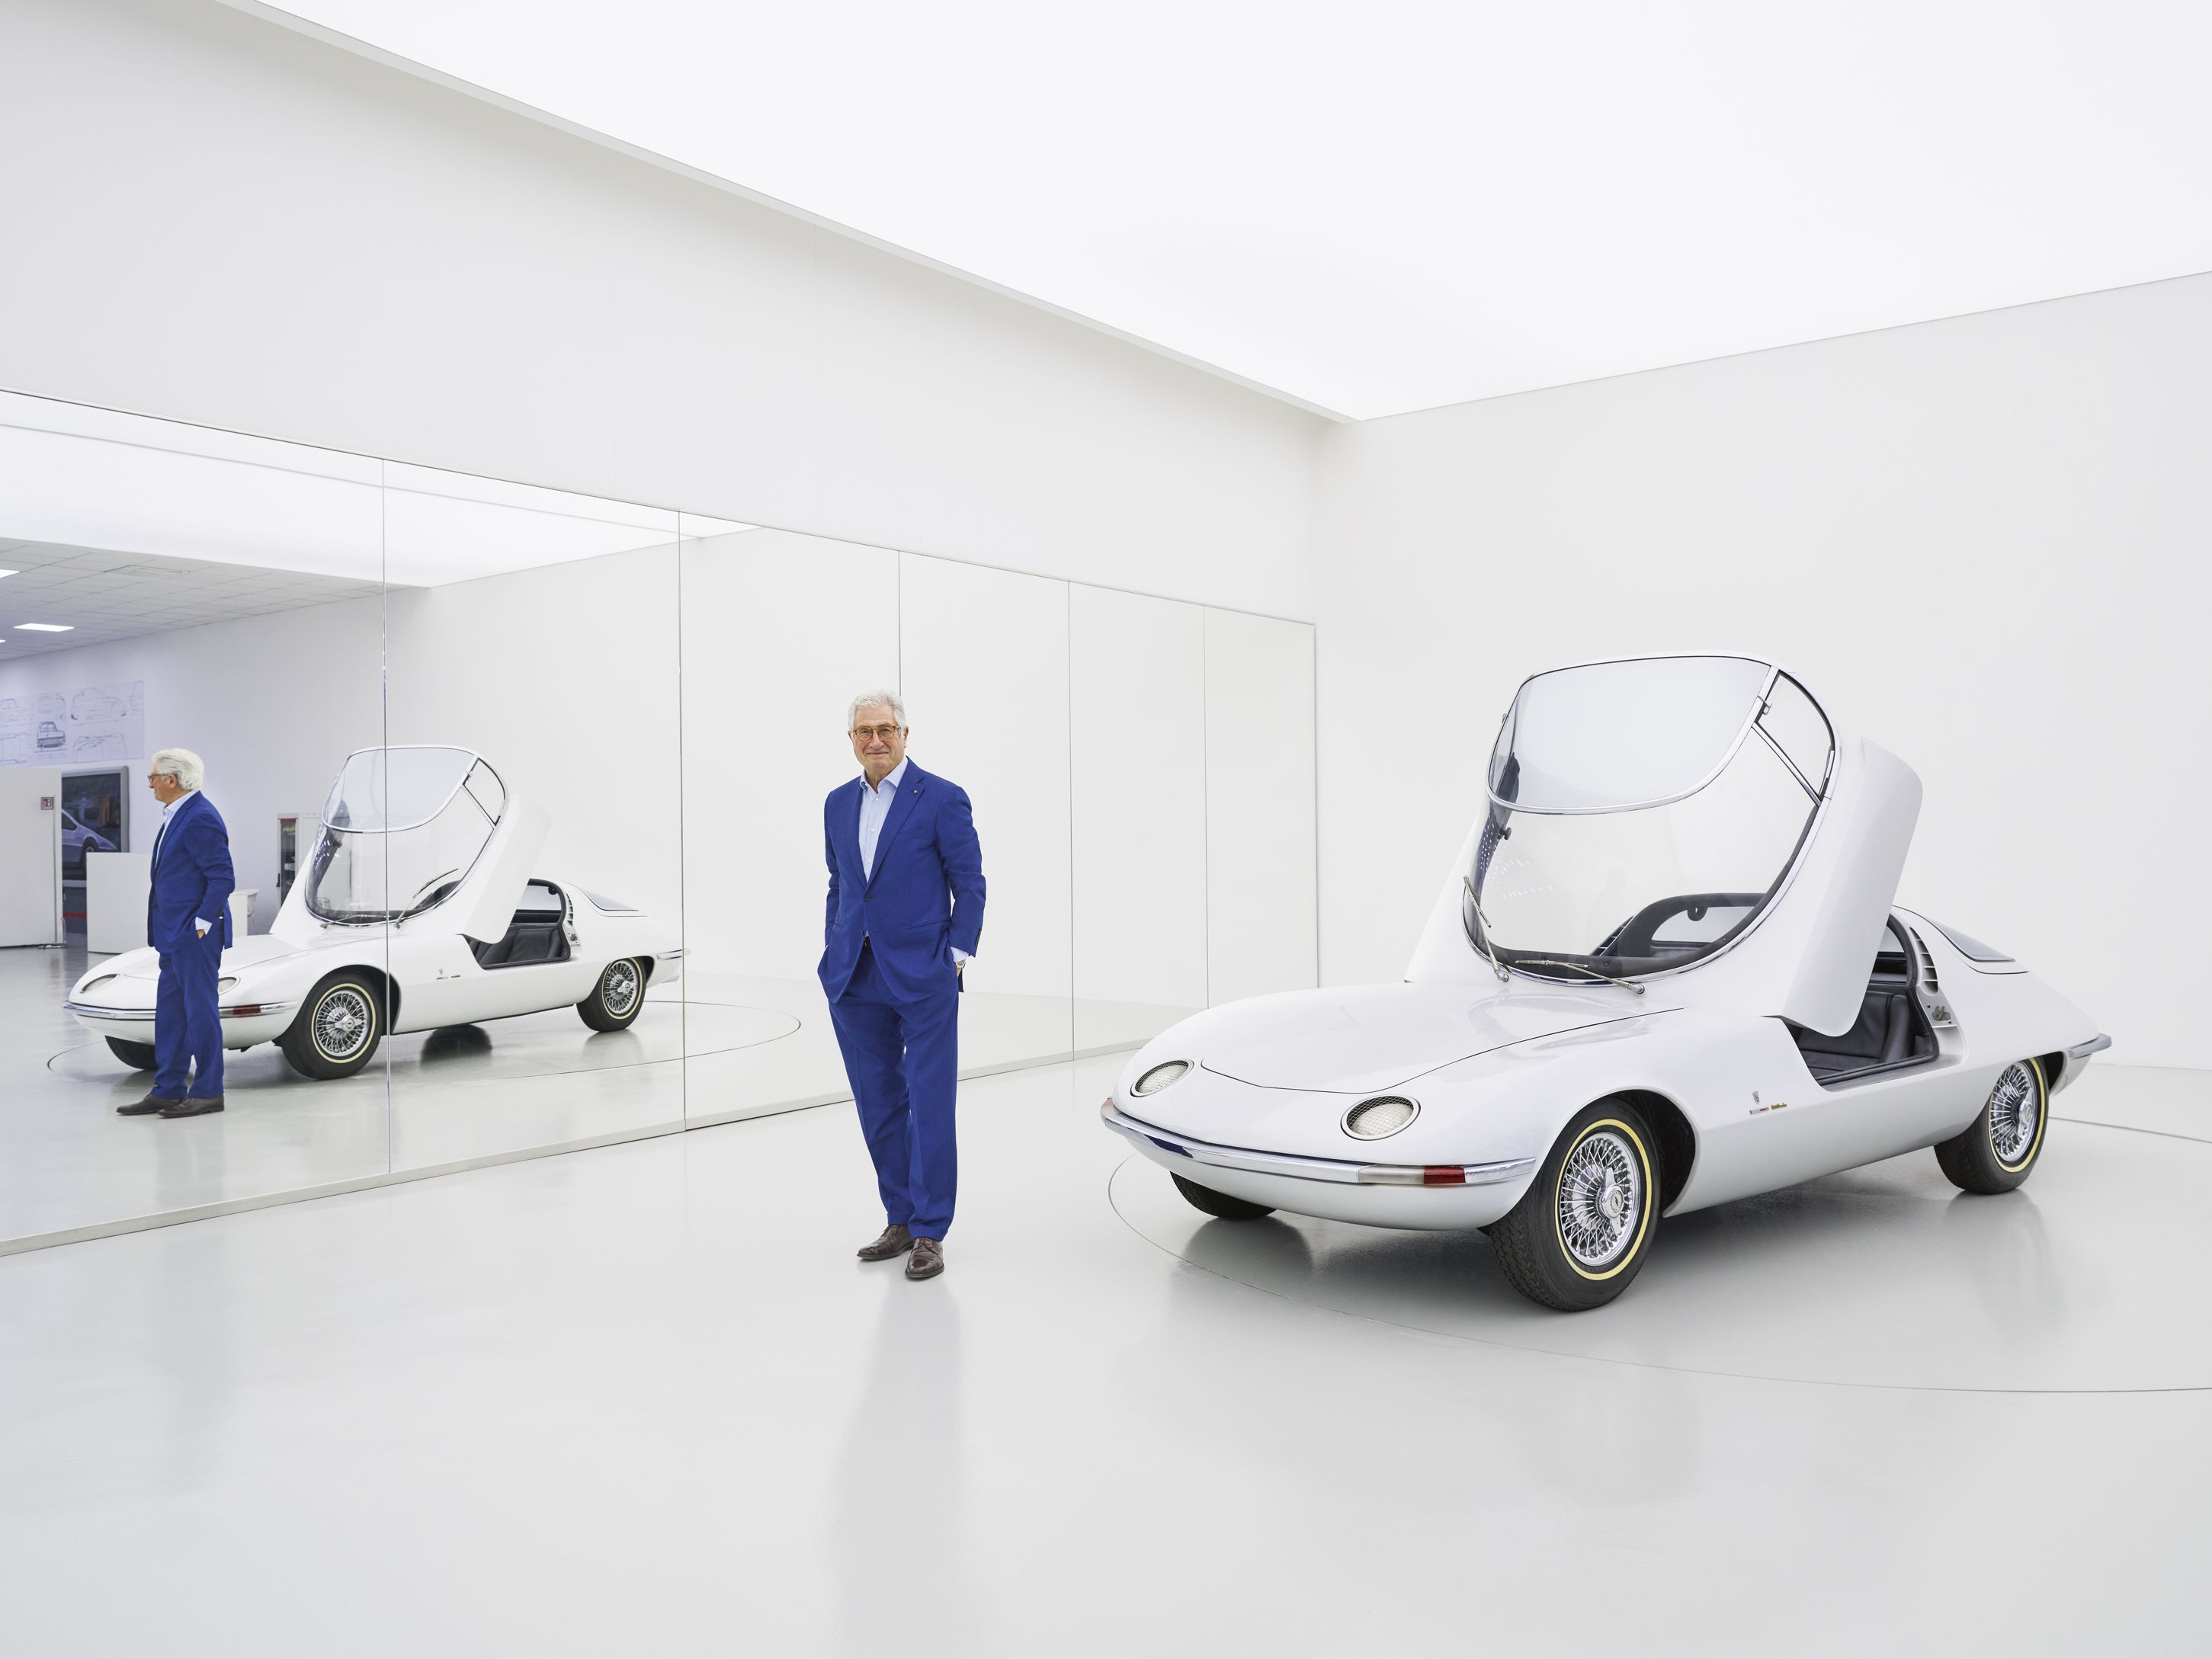 How Giorgetto Giugiaro Became The Greatest Car Designer Of All Time